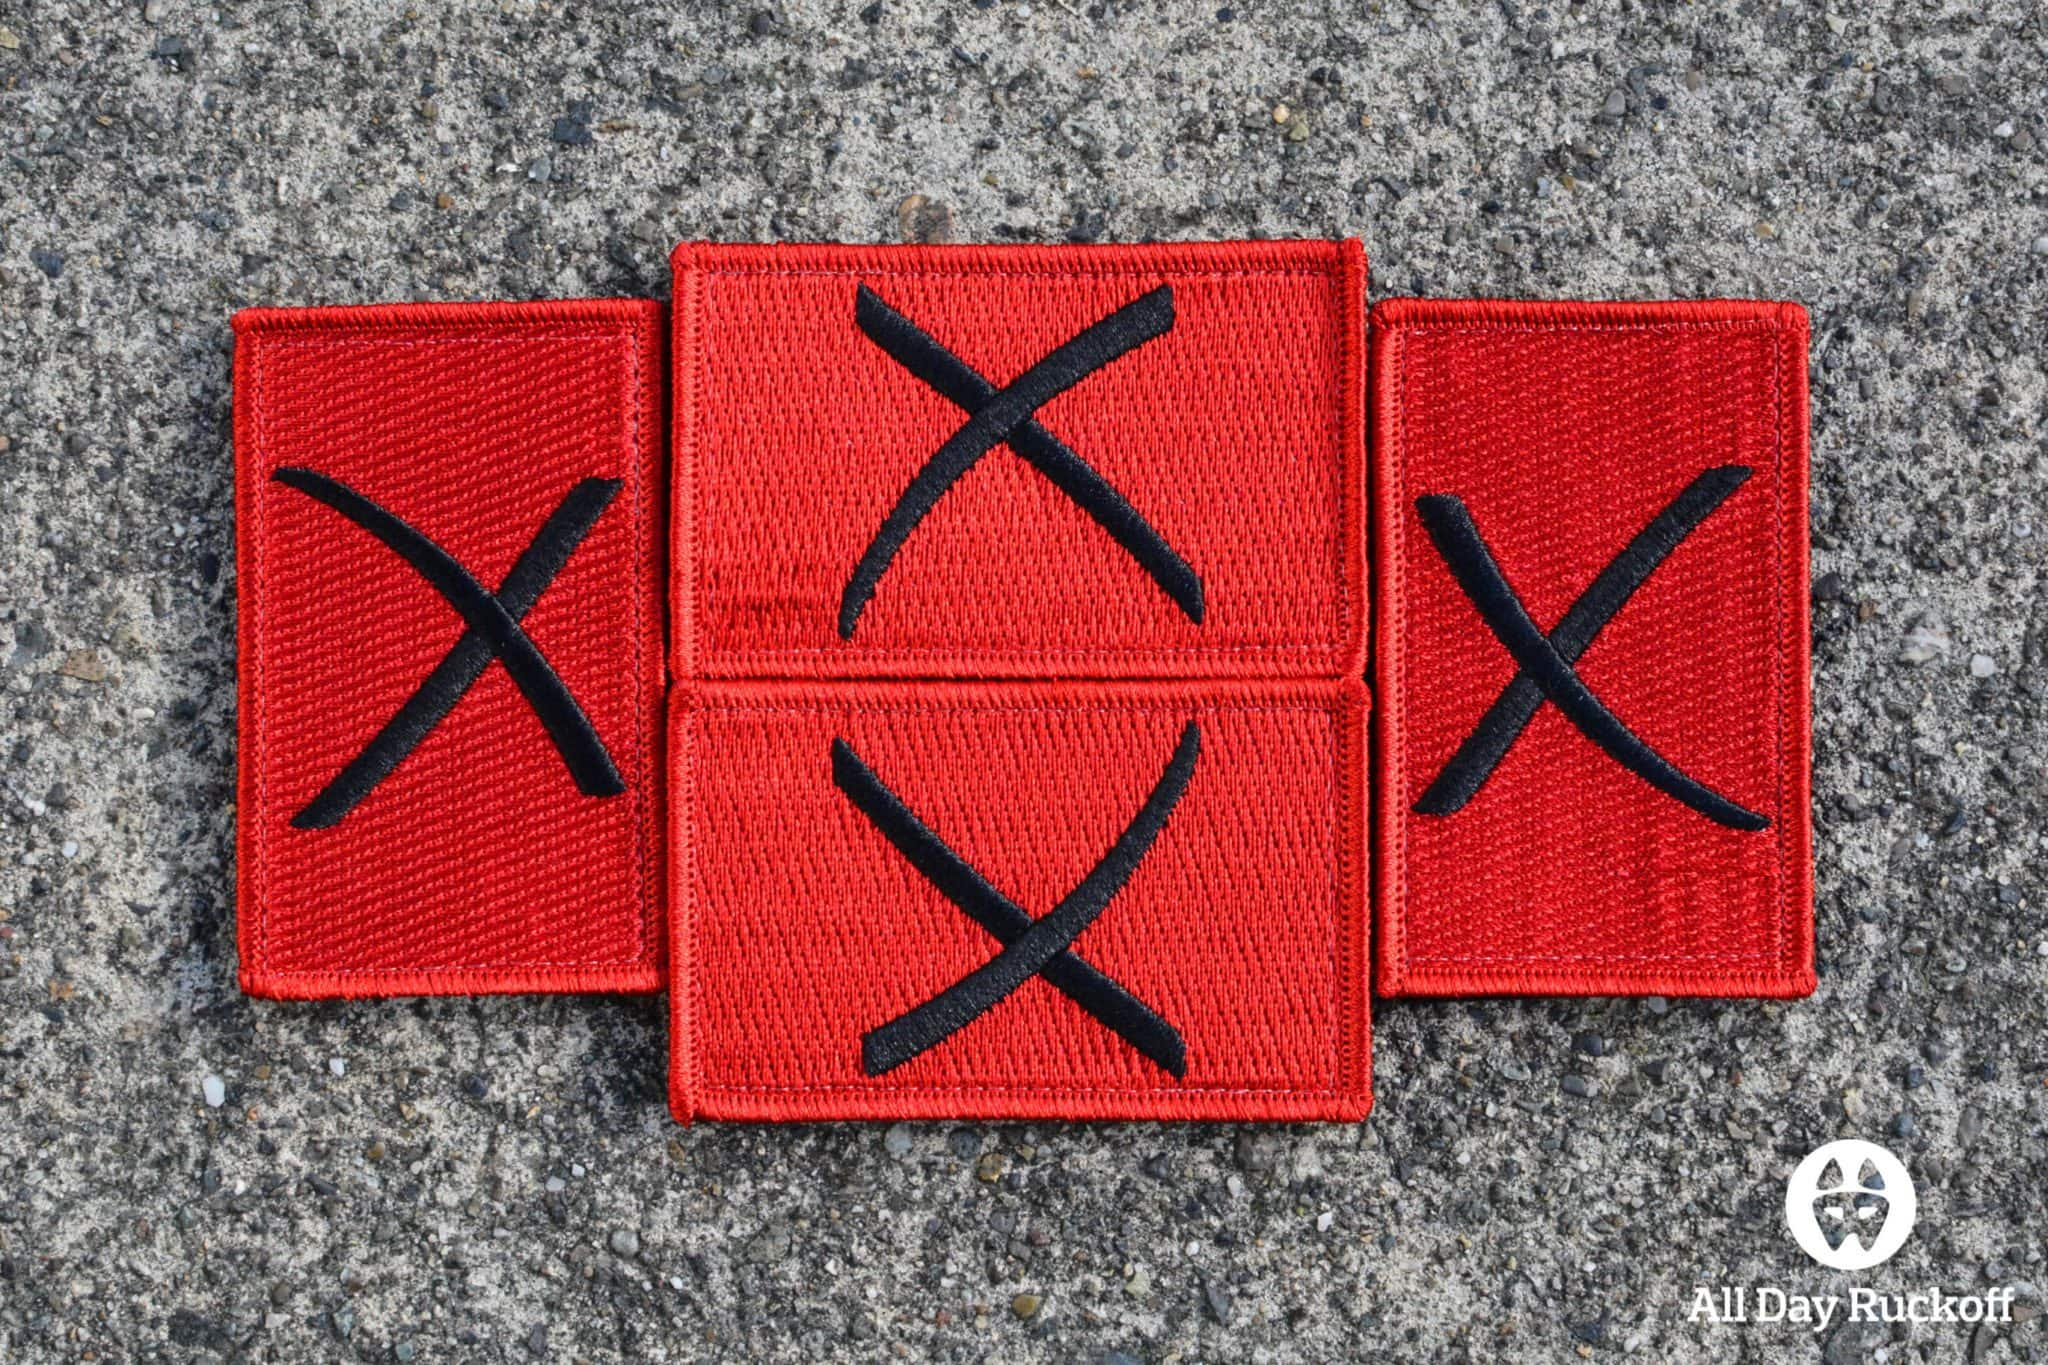 Red X Patch